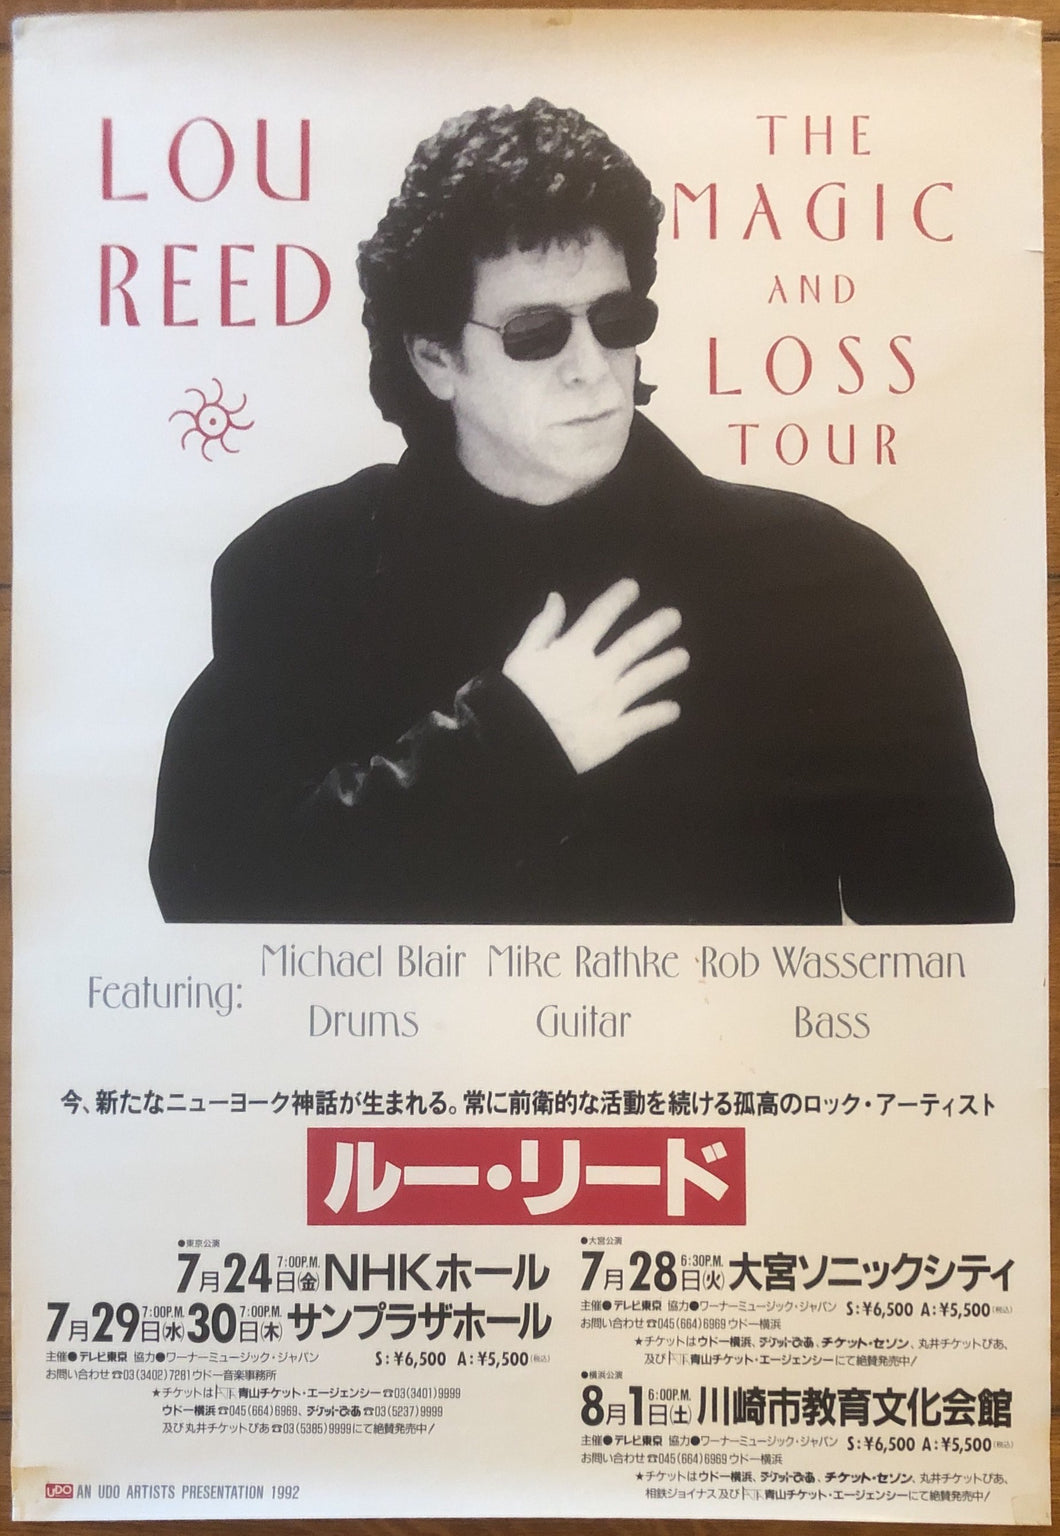 Lou Reed Original Promo Concert Tour Gig Poster Magic & Loss Japanese Tour 1992